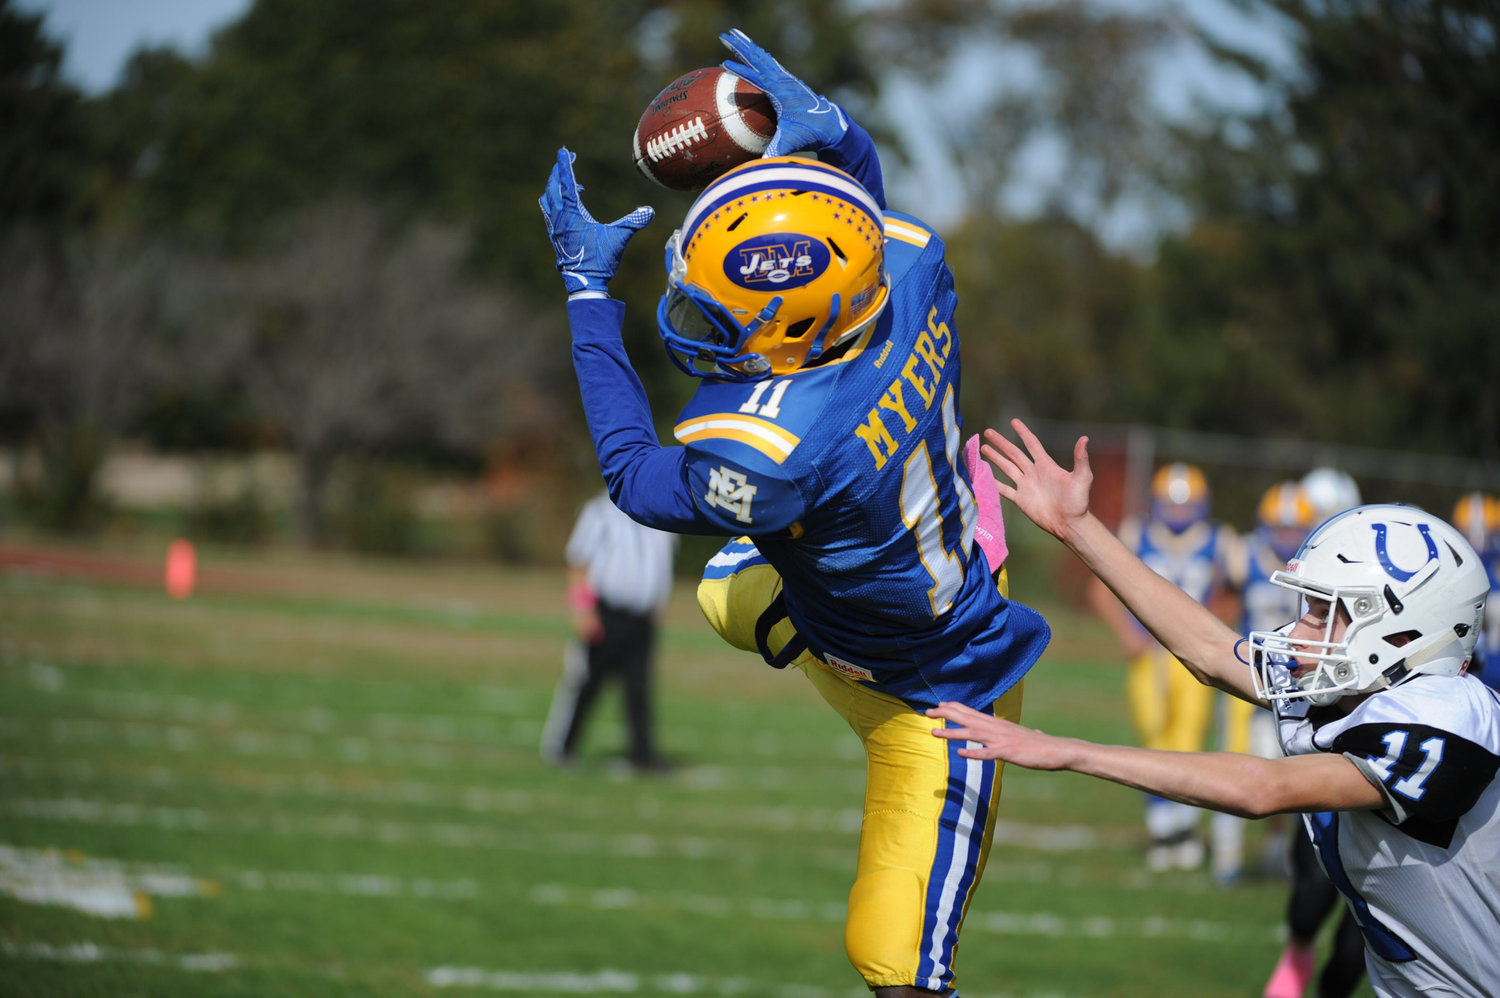 East Meadow High School football player Devin Myers dove forward to make a catch.